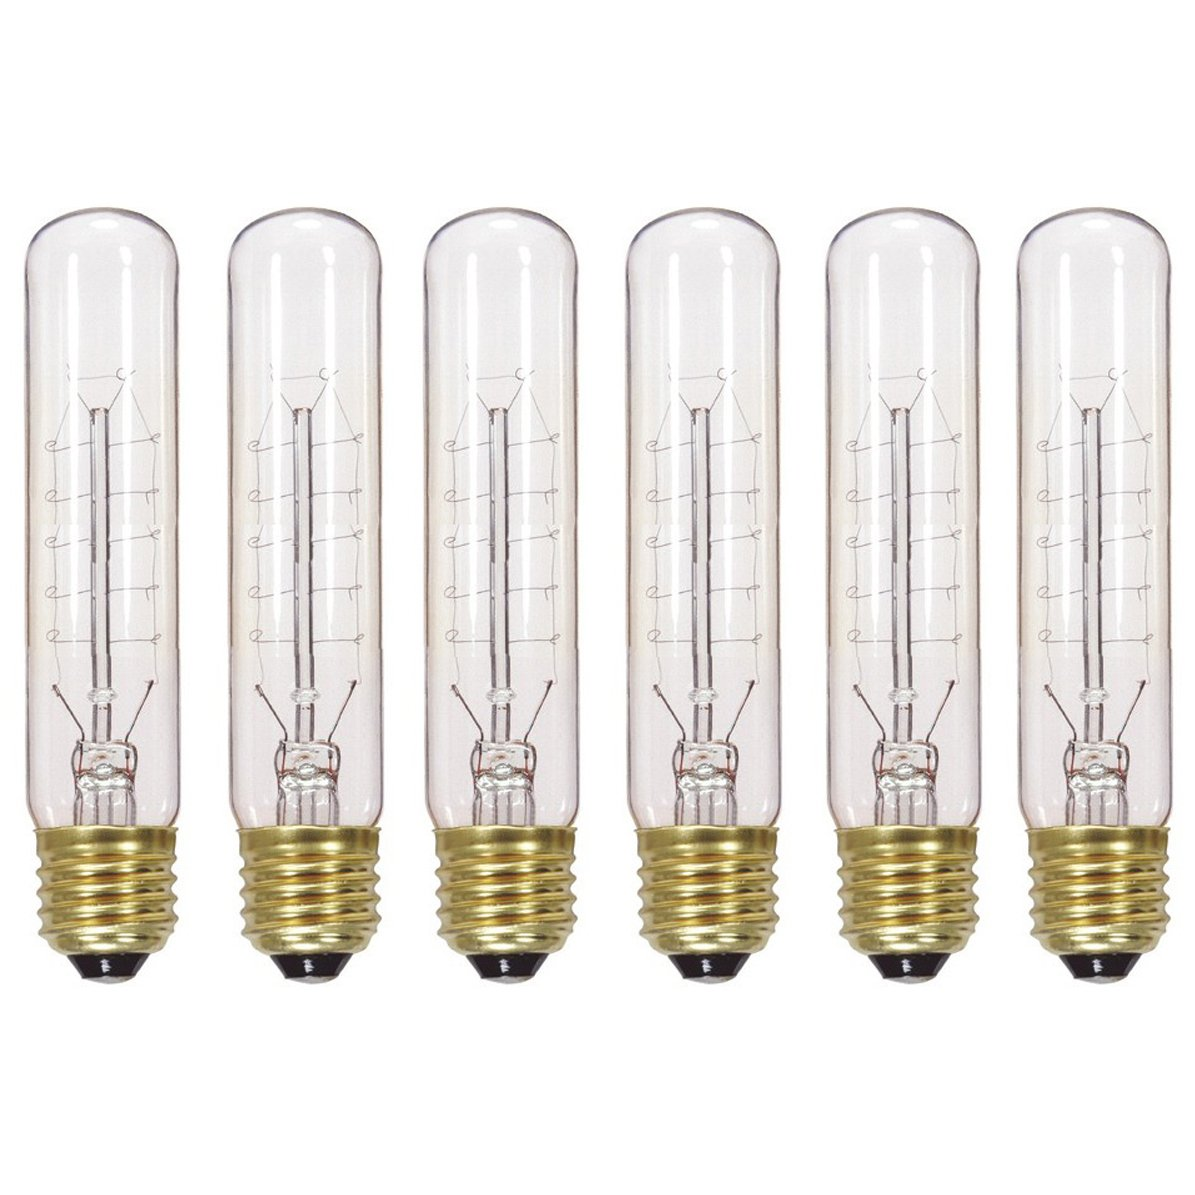 Satco S2415 20W 120V T9 Hairpin Style Filament Vintage Incandescent Bulb, 6-Pack